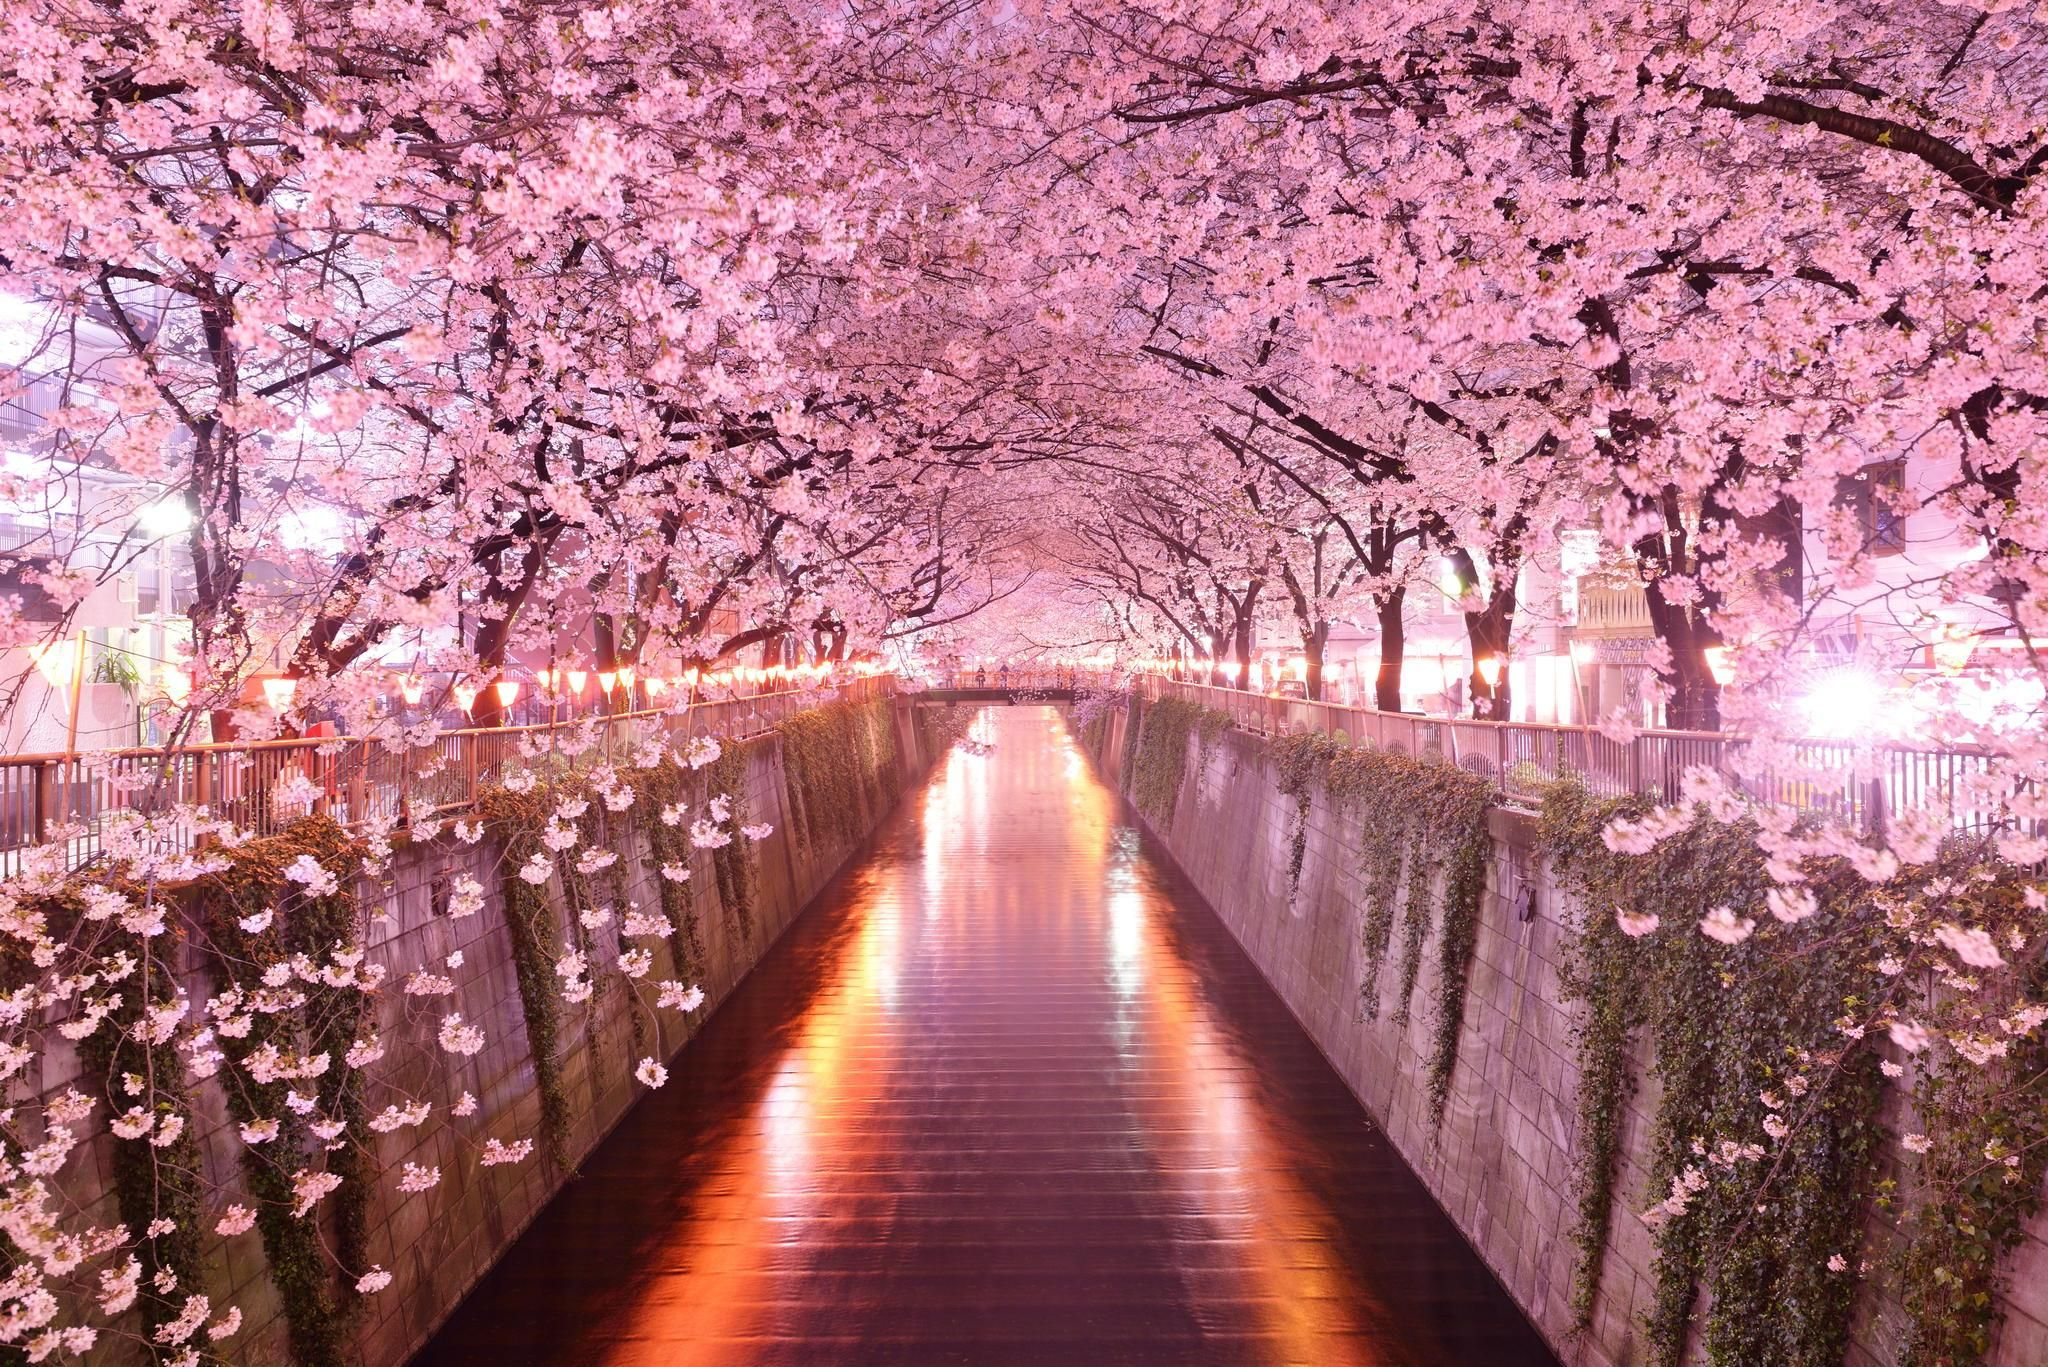 Japan Sakura Background Wallpapers Hd Wallpapers Widescreen Japanese Wallpaper Sakura Winter Art Wallpaper From Gleupold Com Com